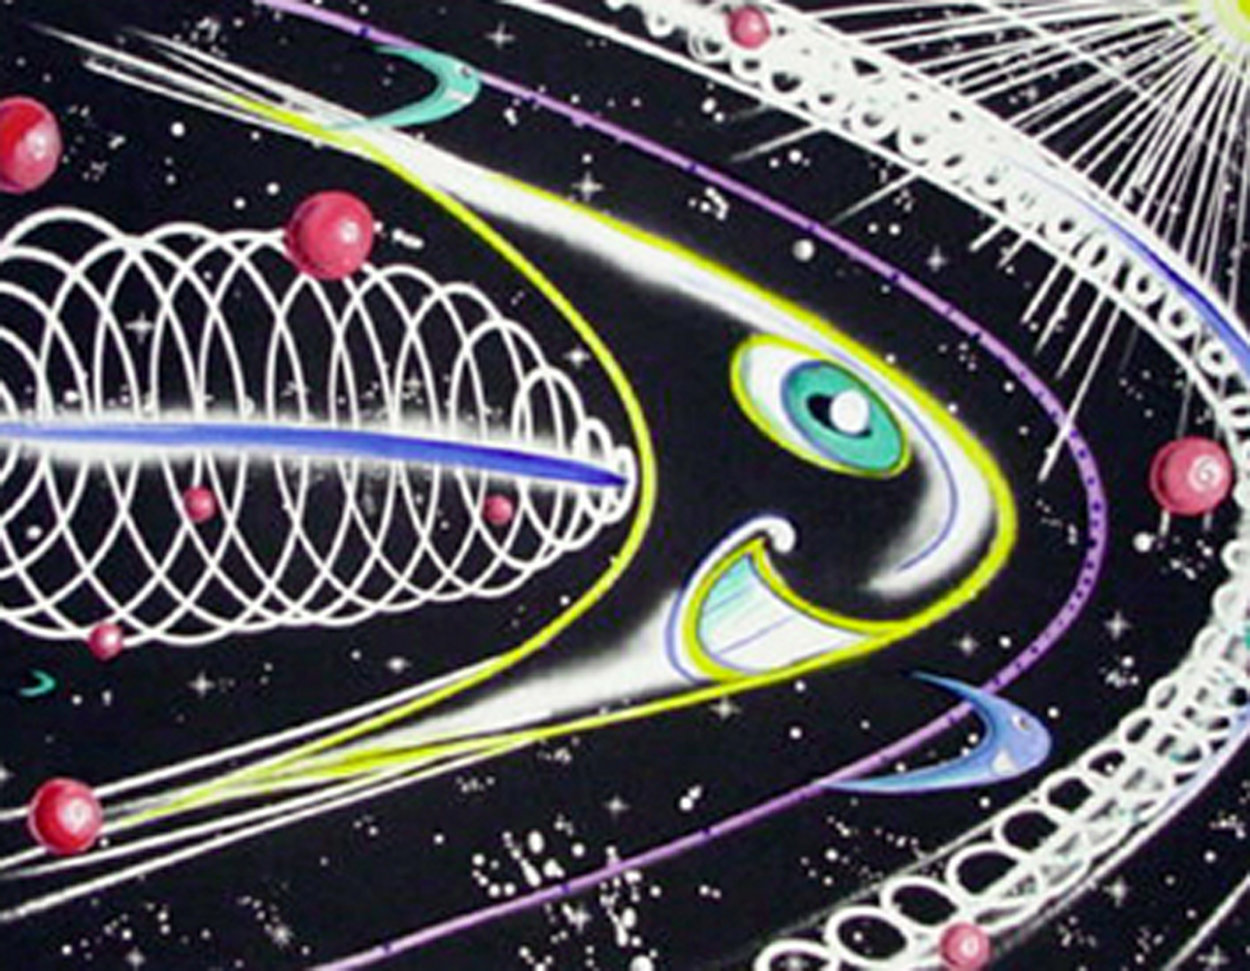 Space Traveler Hand Painted Monoprint 2011 45x55 Works on Paper (not prints) by Kenny Scharf